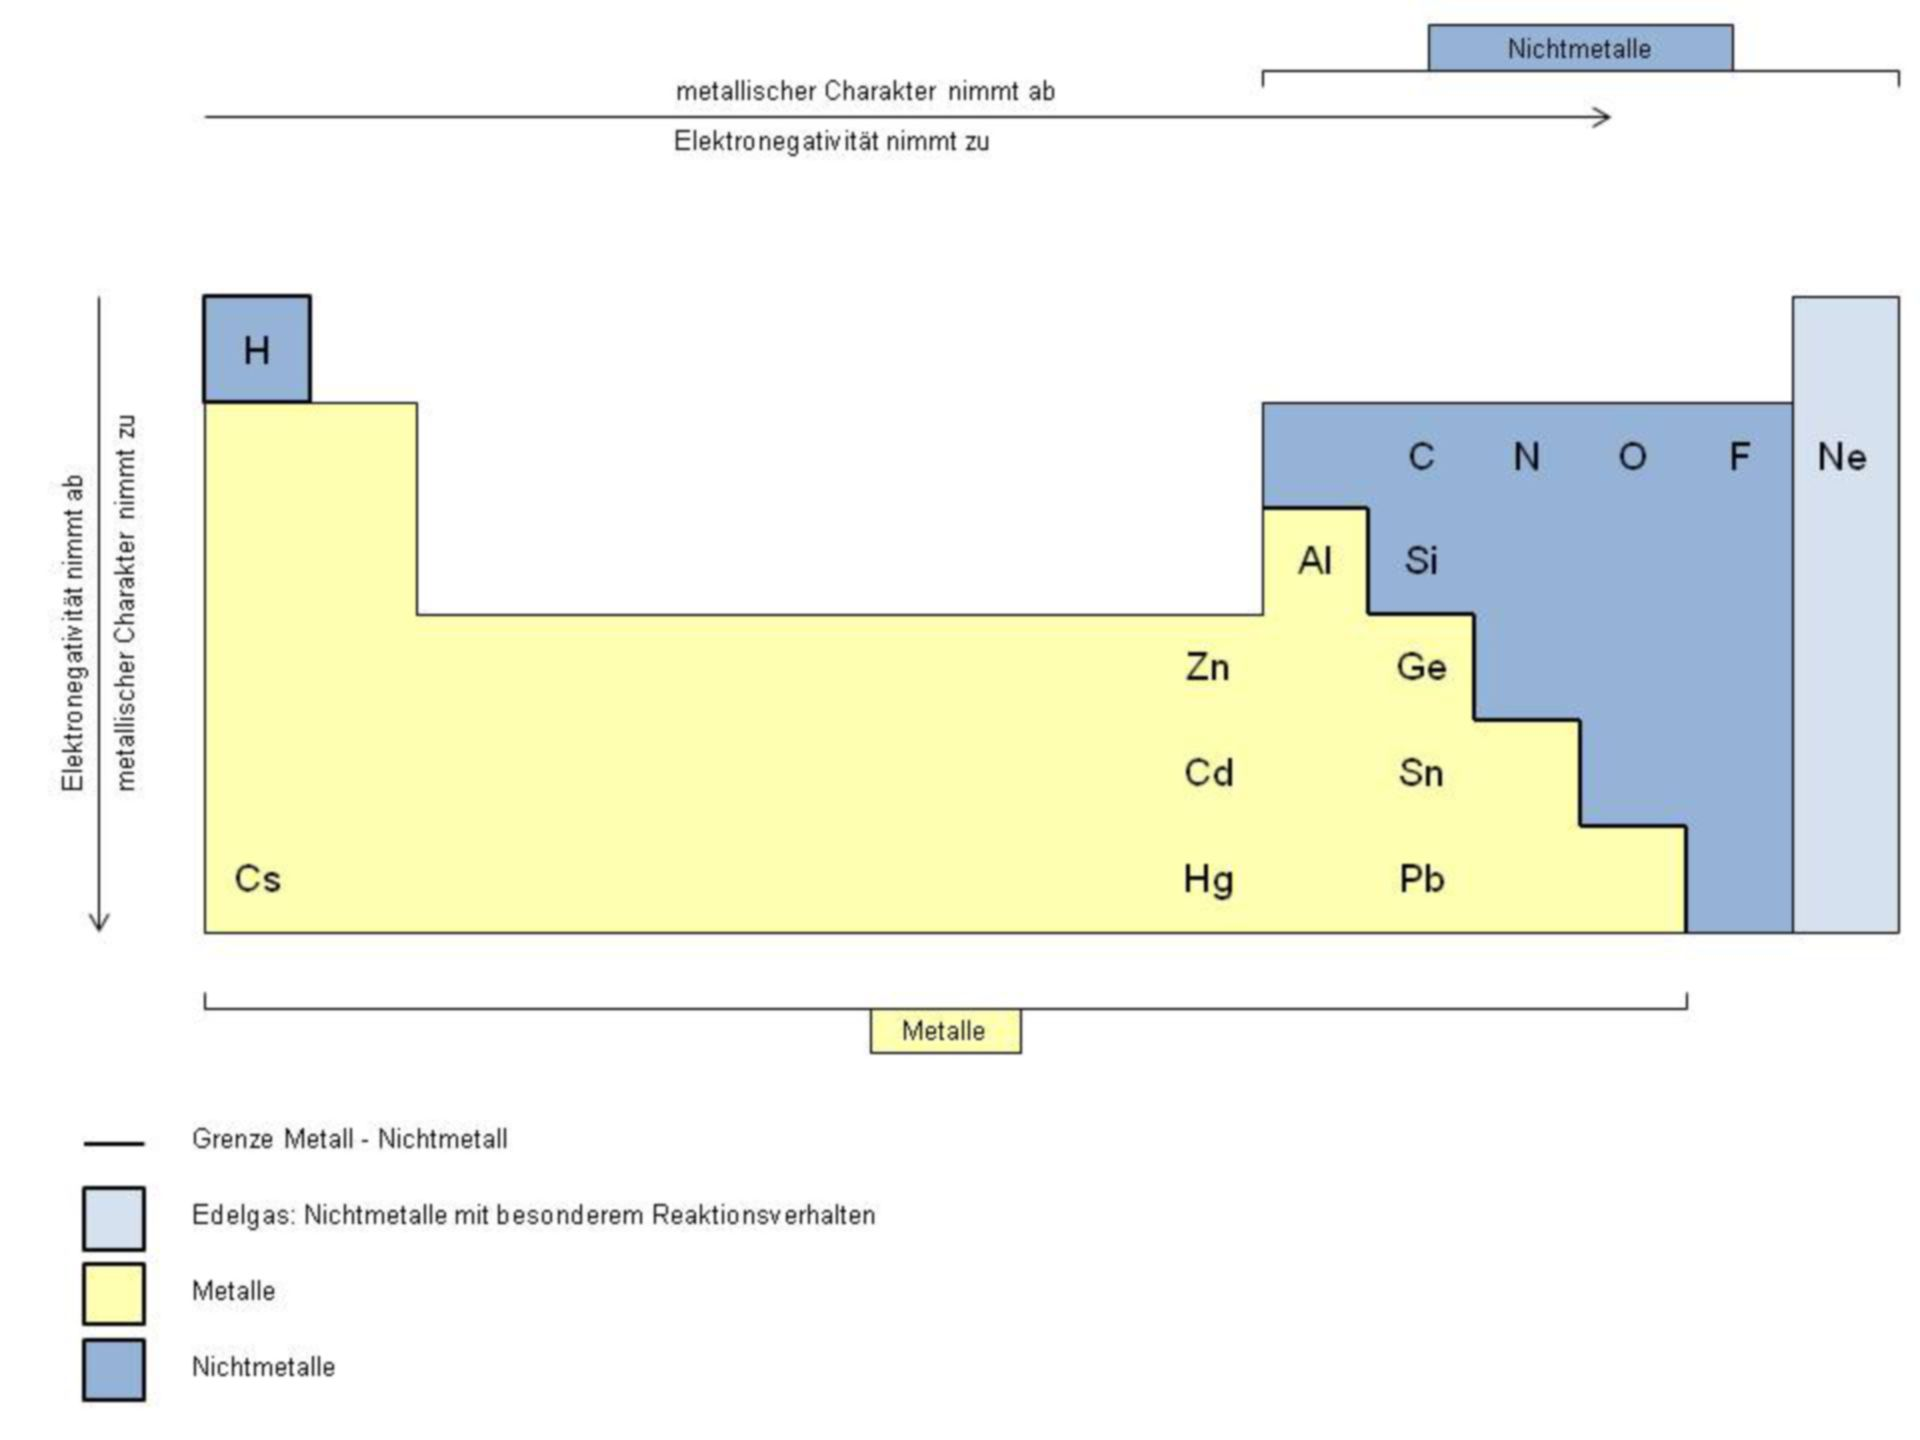 Metals and non-metals in the periodic system